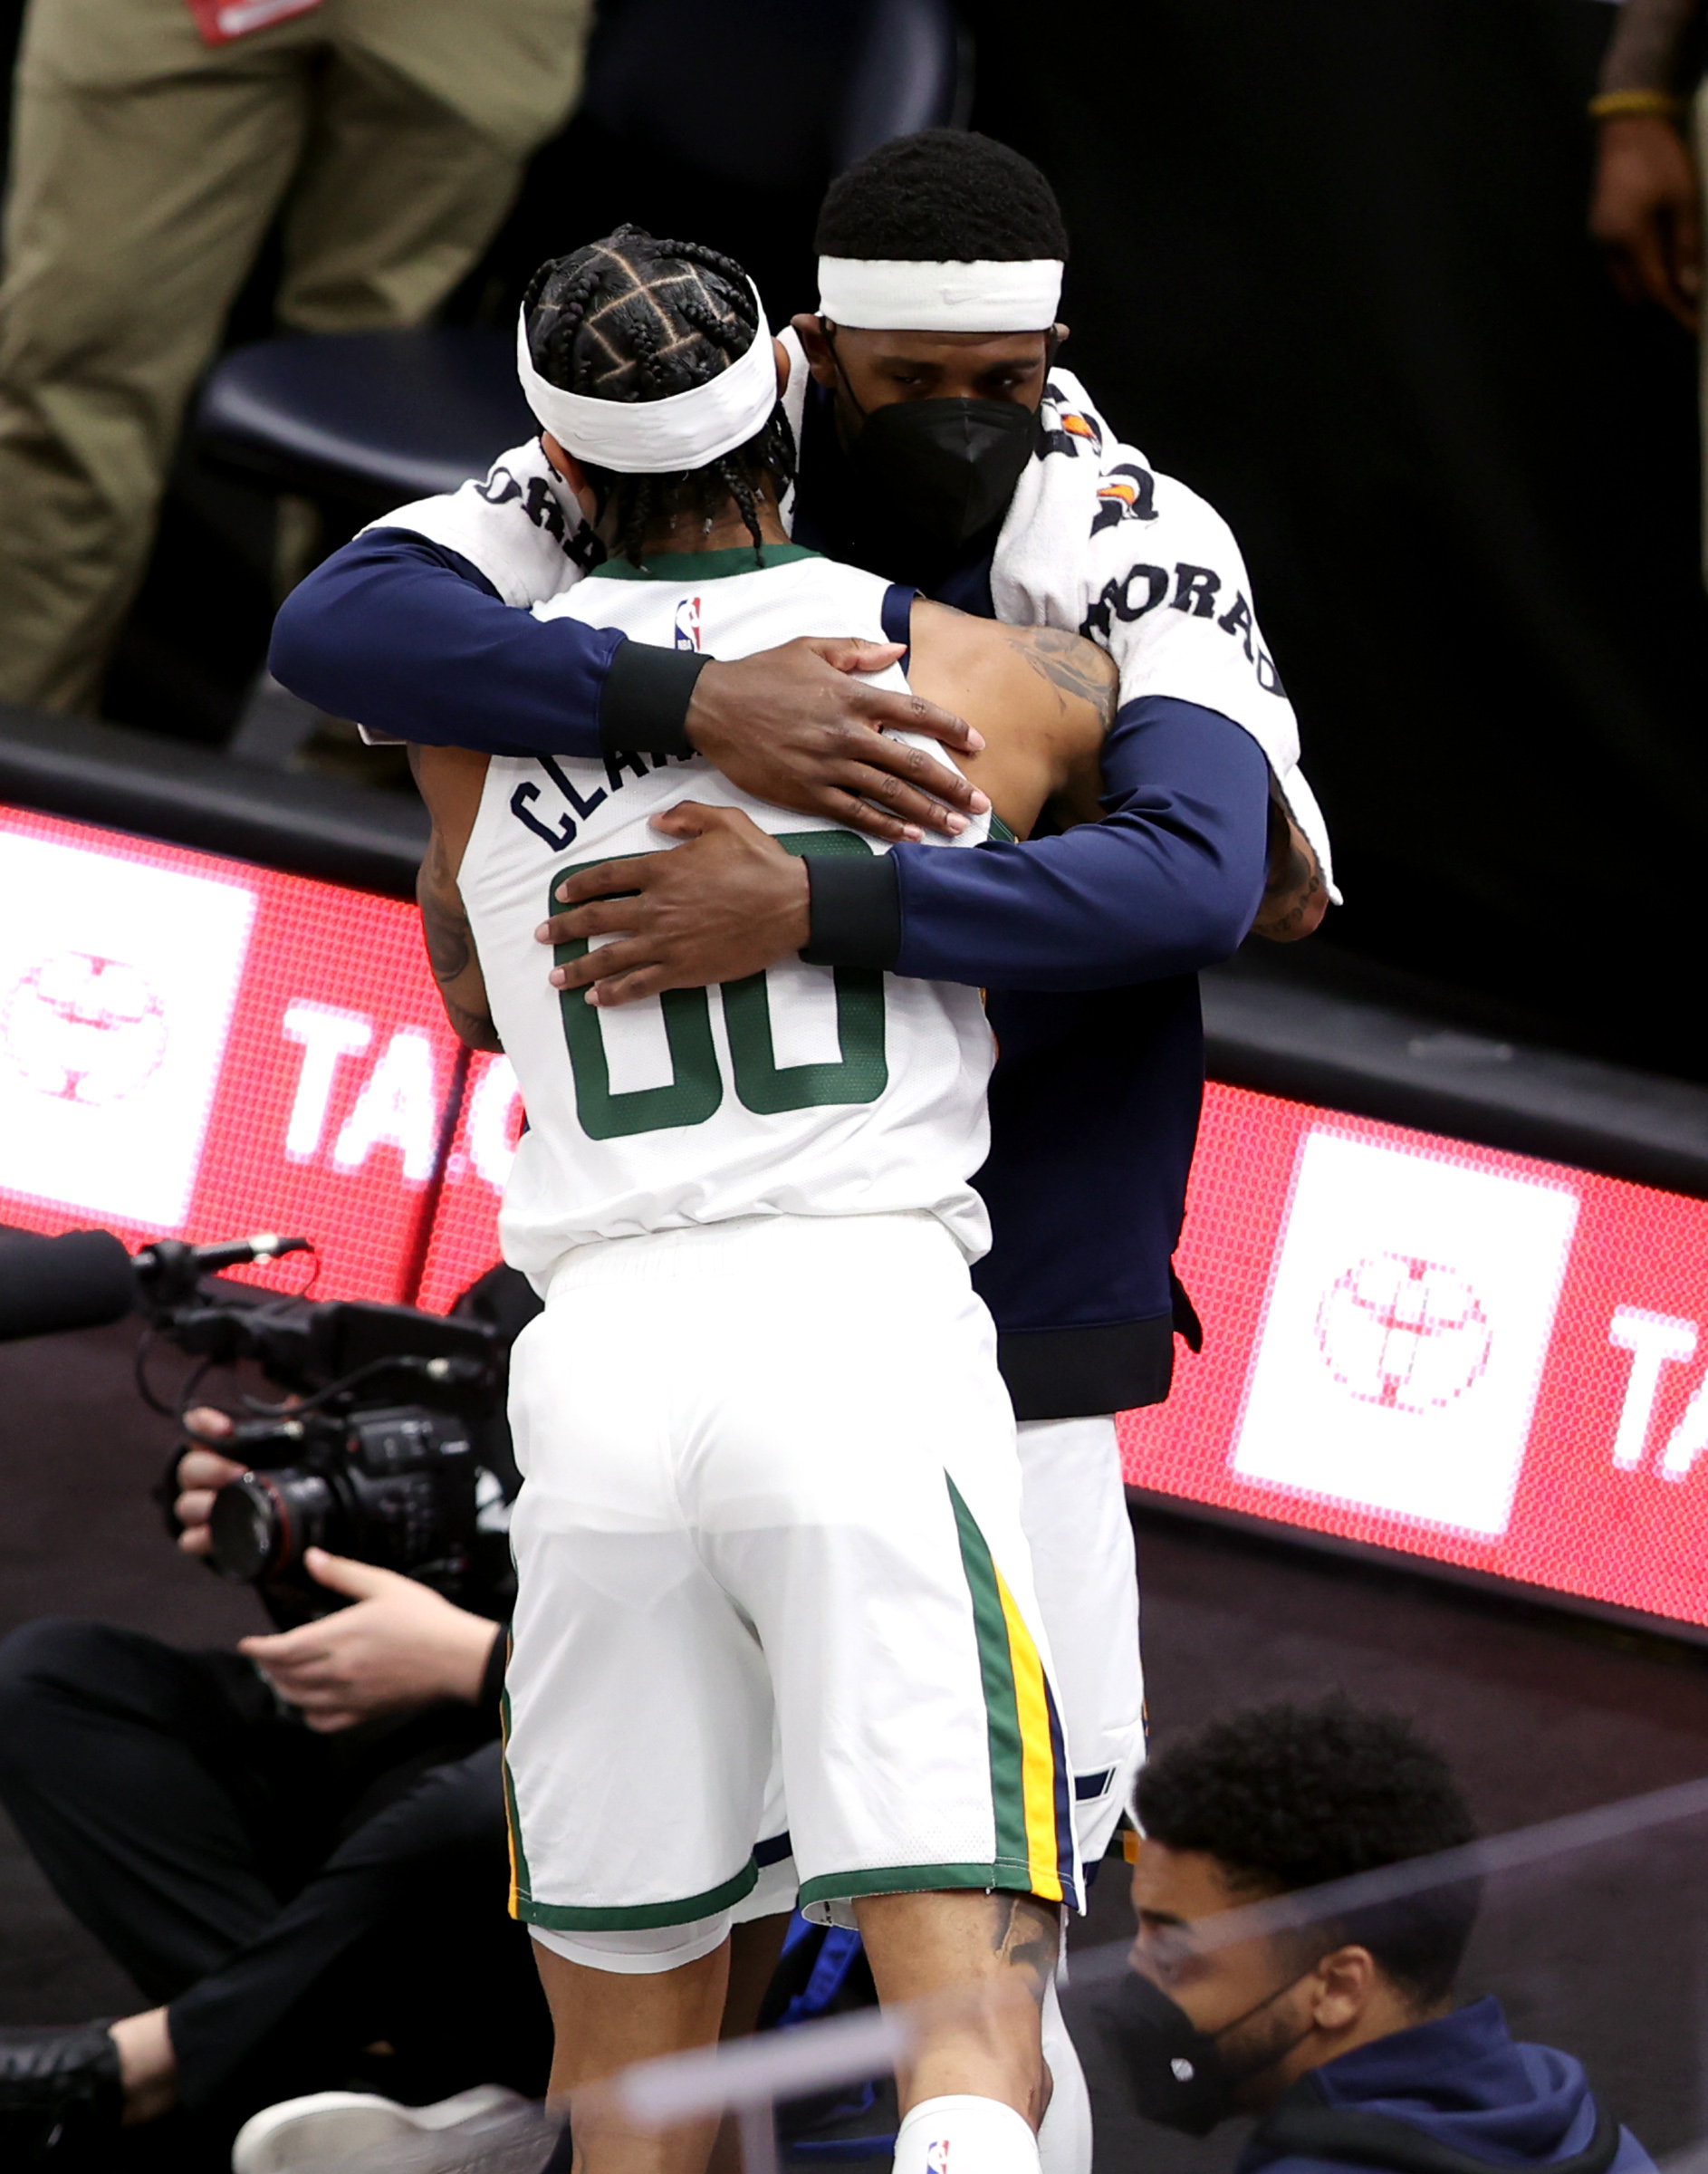 Utah Jazz guard Jordan Clarkson (00) gets a hug from teammate Utah Jazz forward Royce O'Neale (23) as he comes out of the game as the Utah Jazz and the San Antonio Spurs play an NBA basketball game at Vivint Arena in Salt Lake City on Wednesday, May 5, 2021. Utah won 126-94.